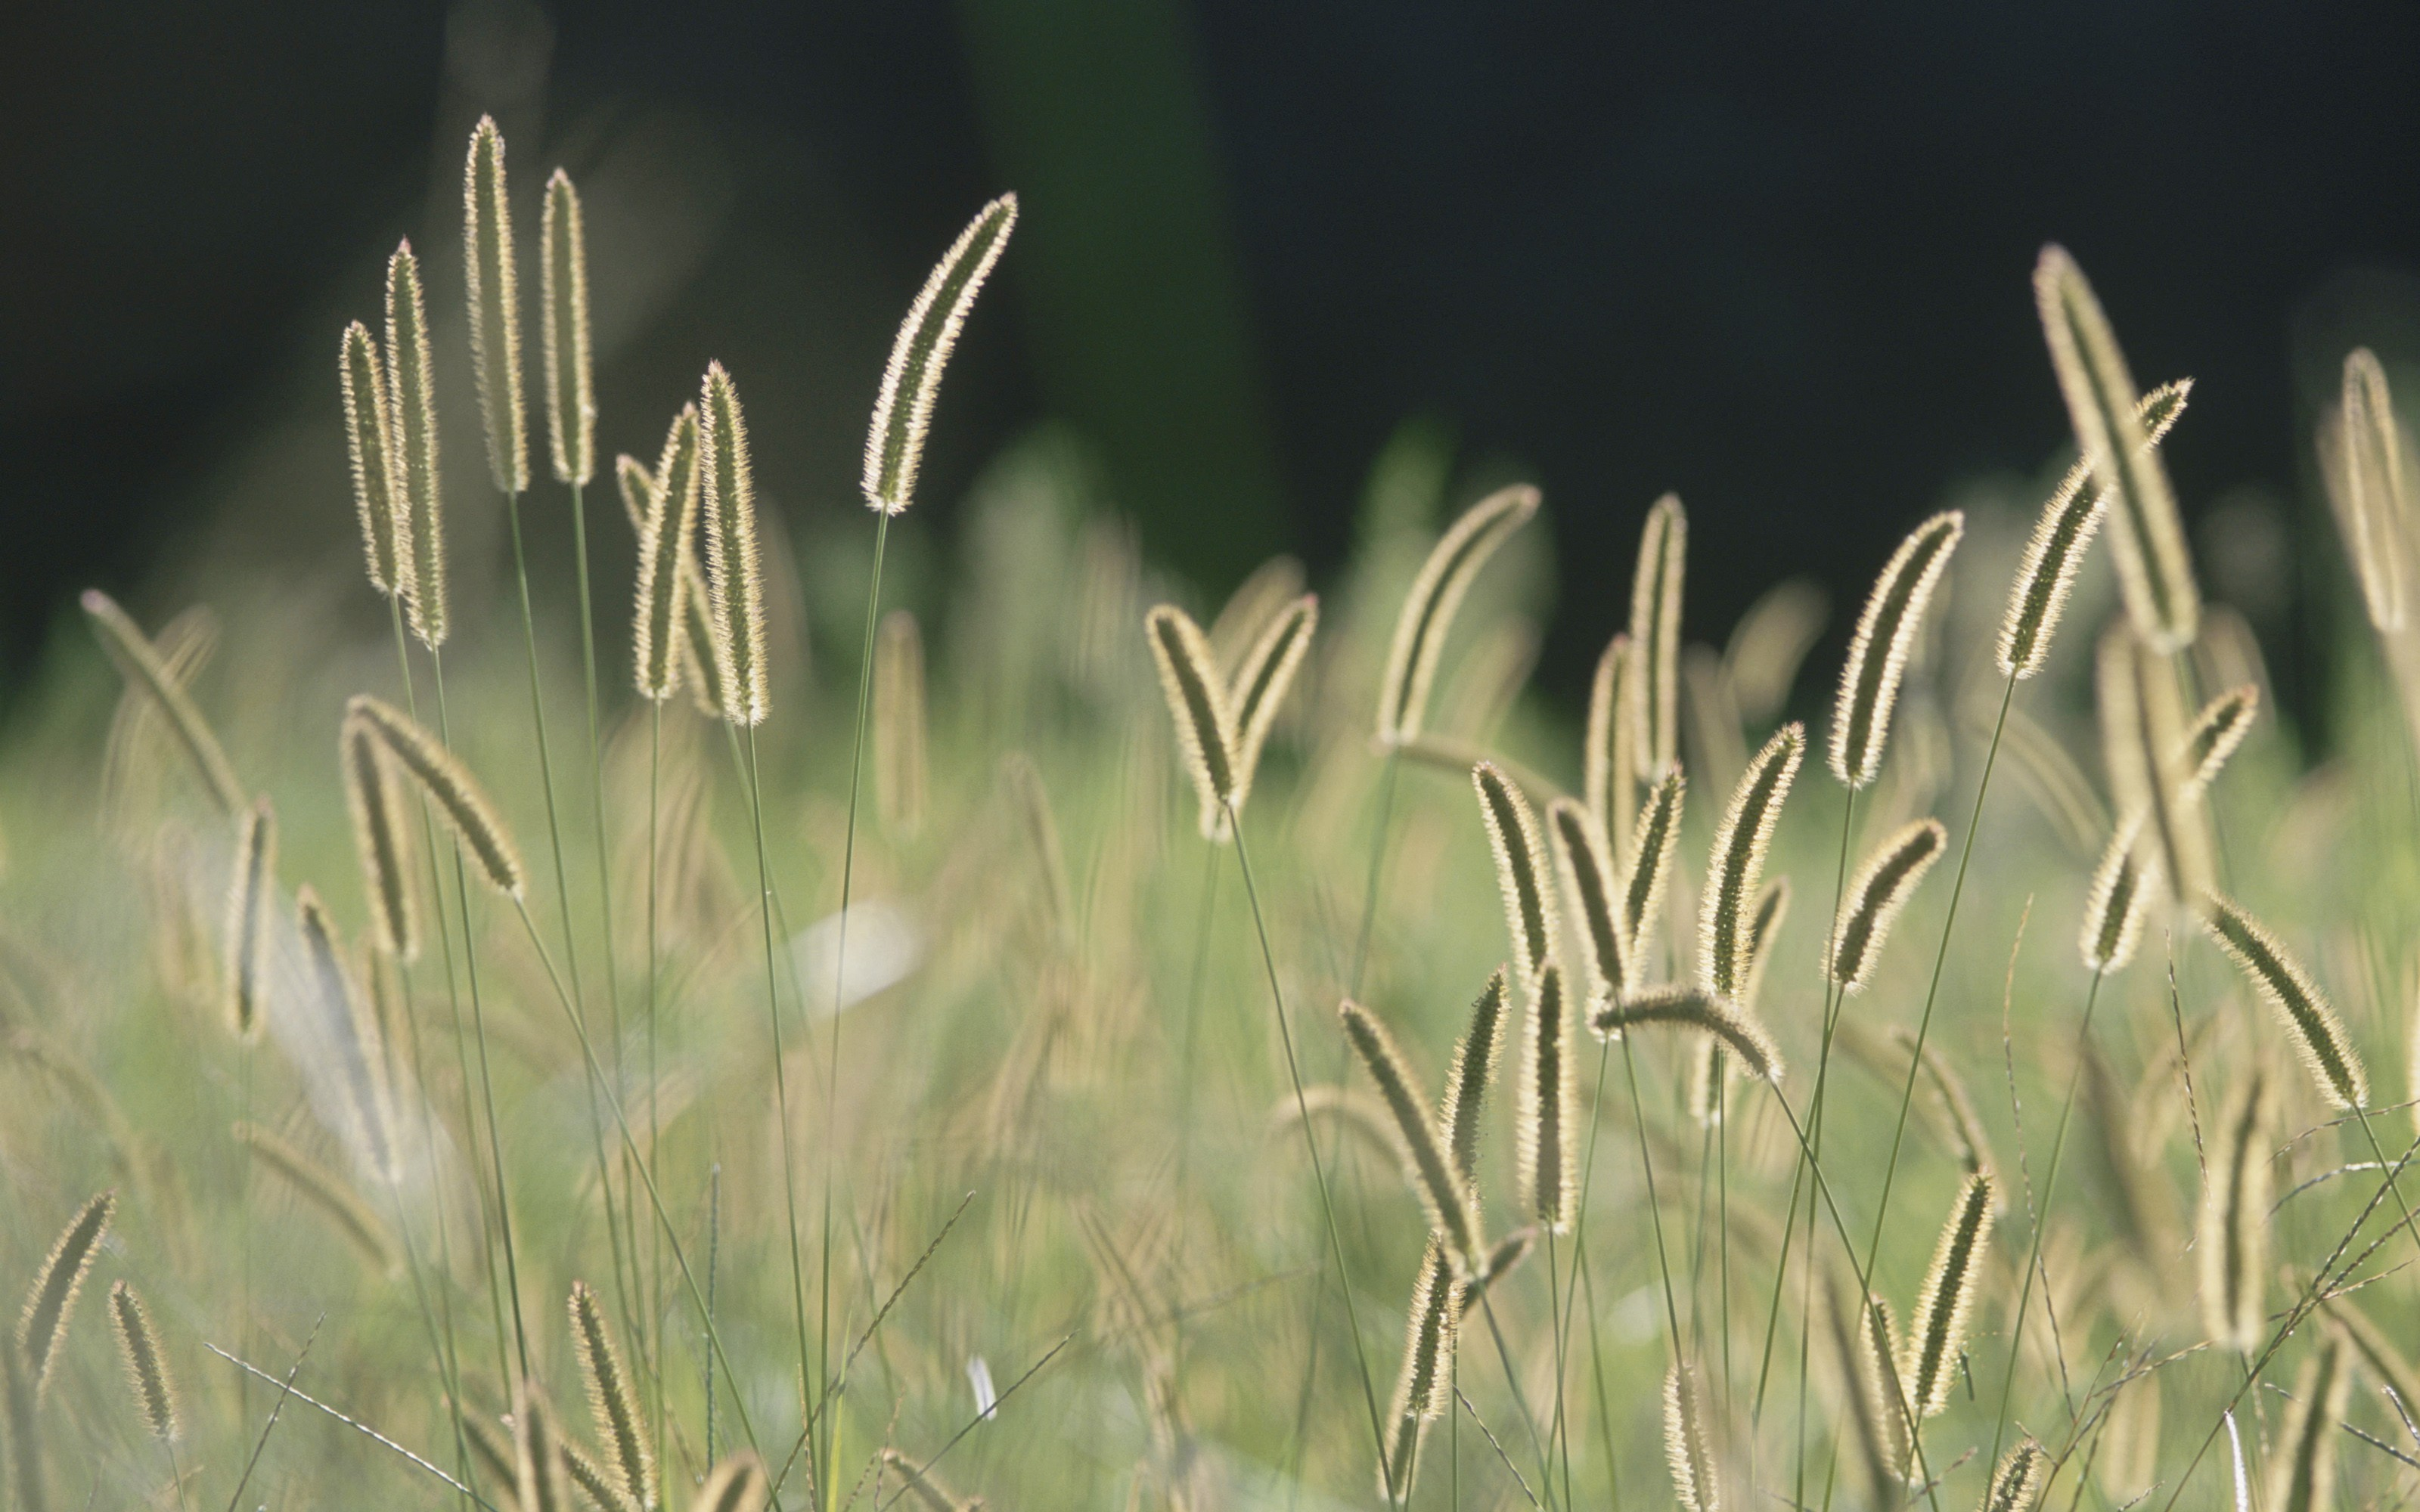 General 3200x2000 spikelets nature grass plants